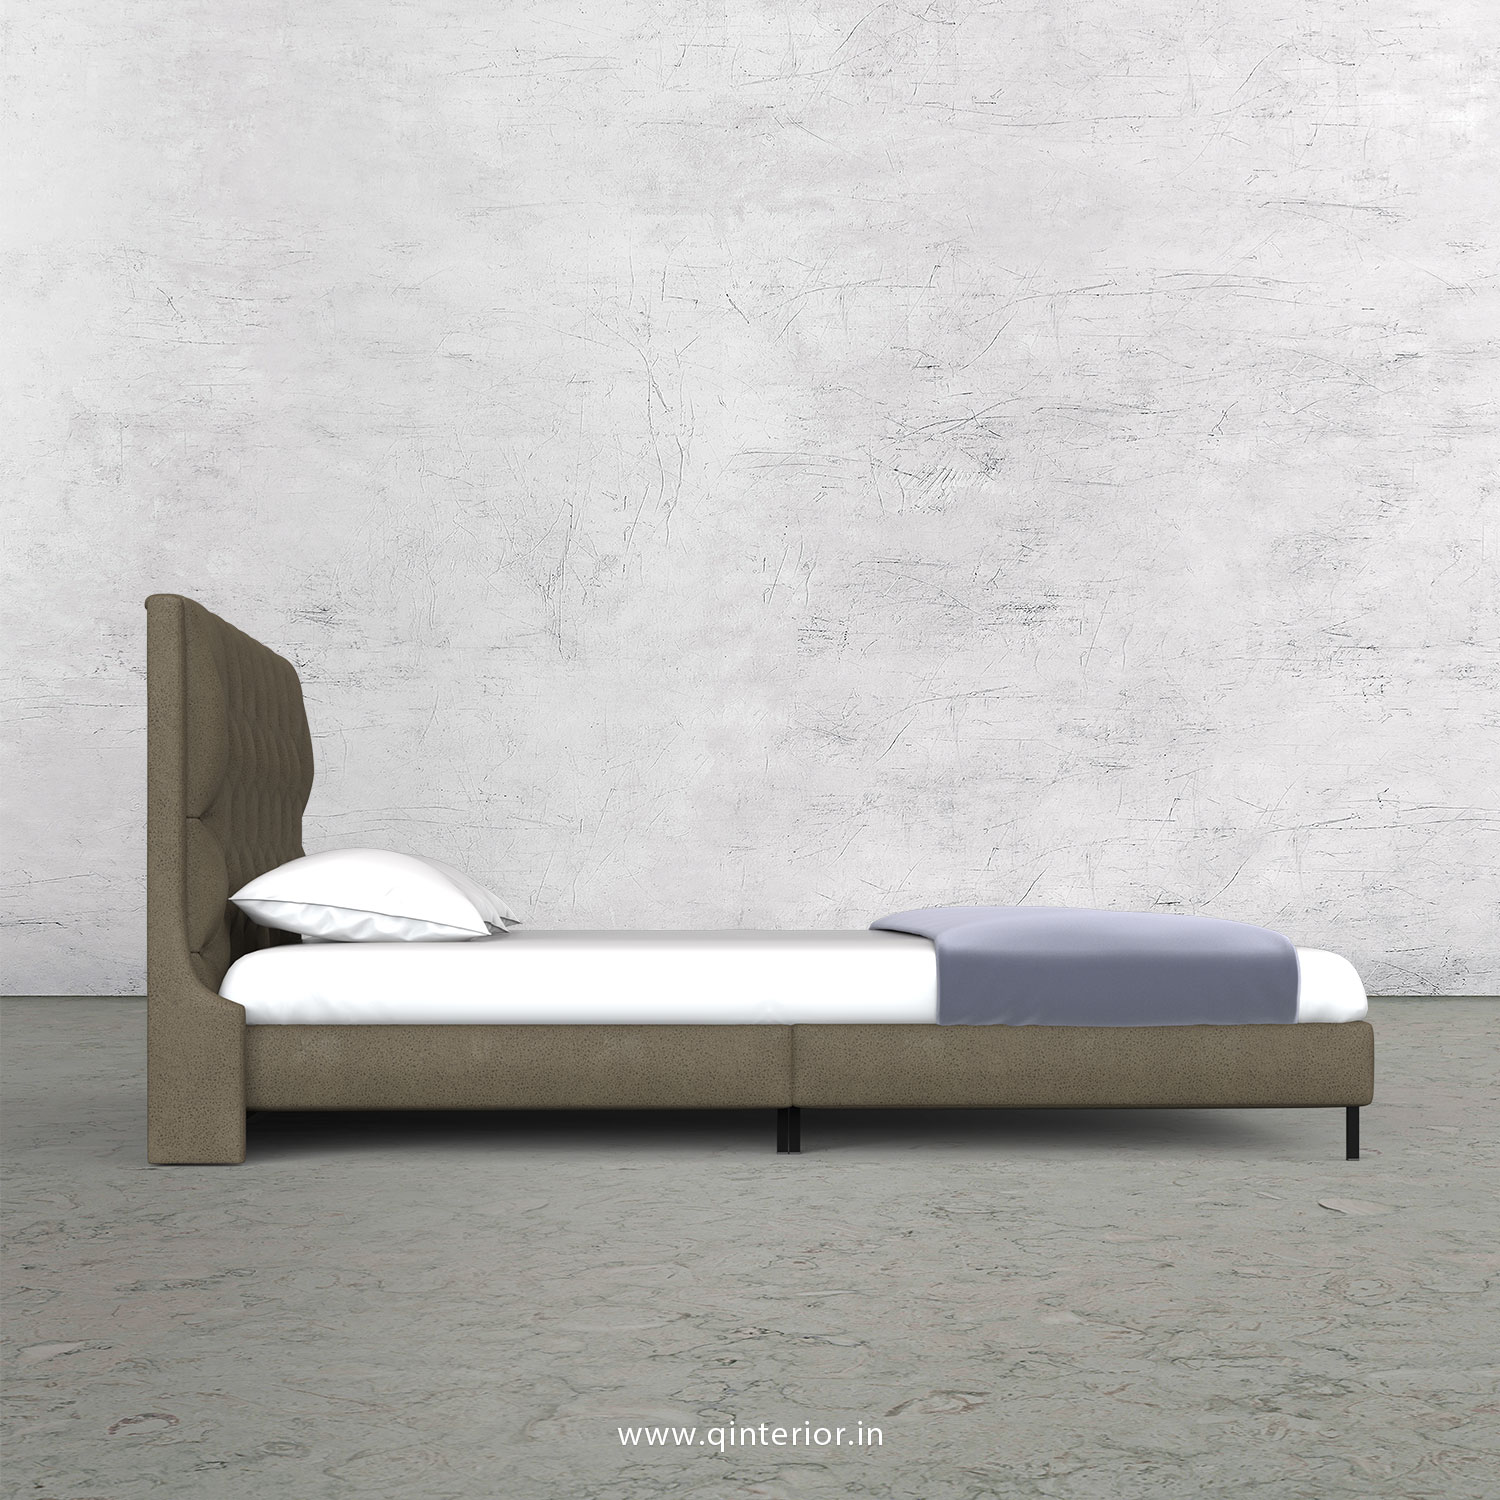 Scorpius King Size Bed in Fab Leather Fabric - KBD003 FL06